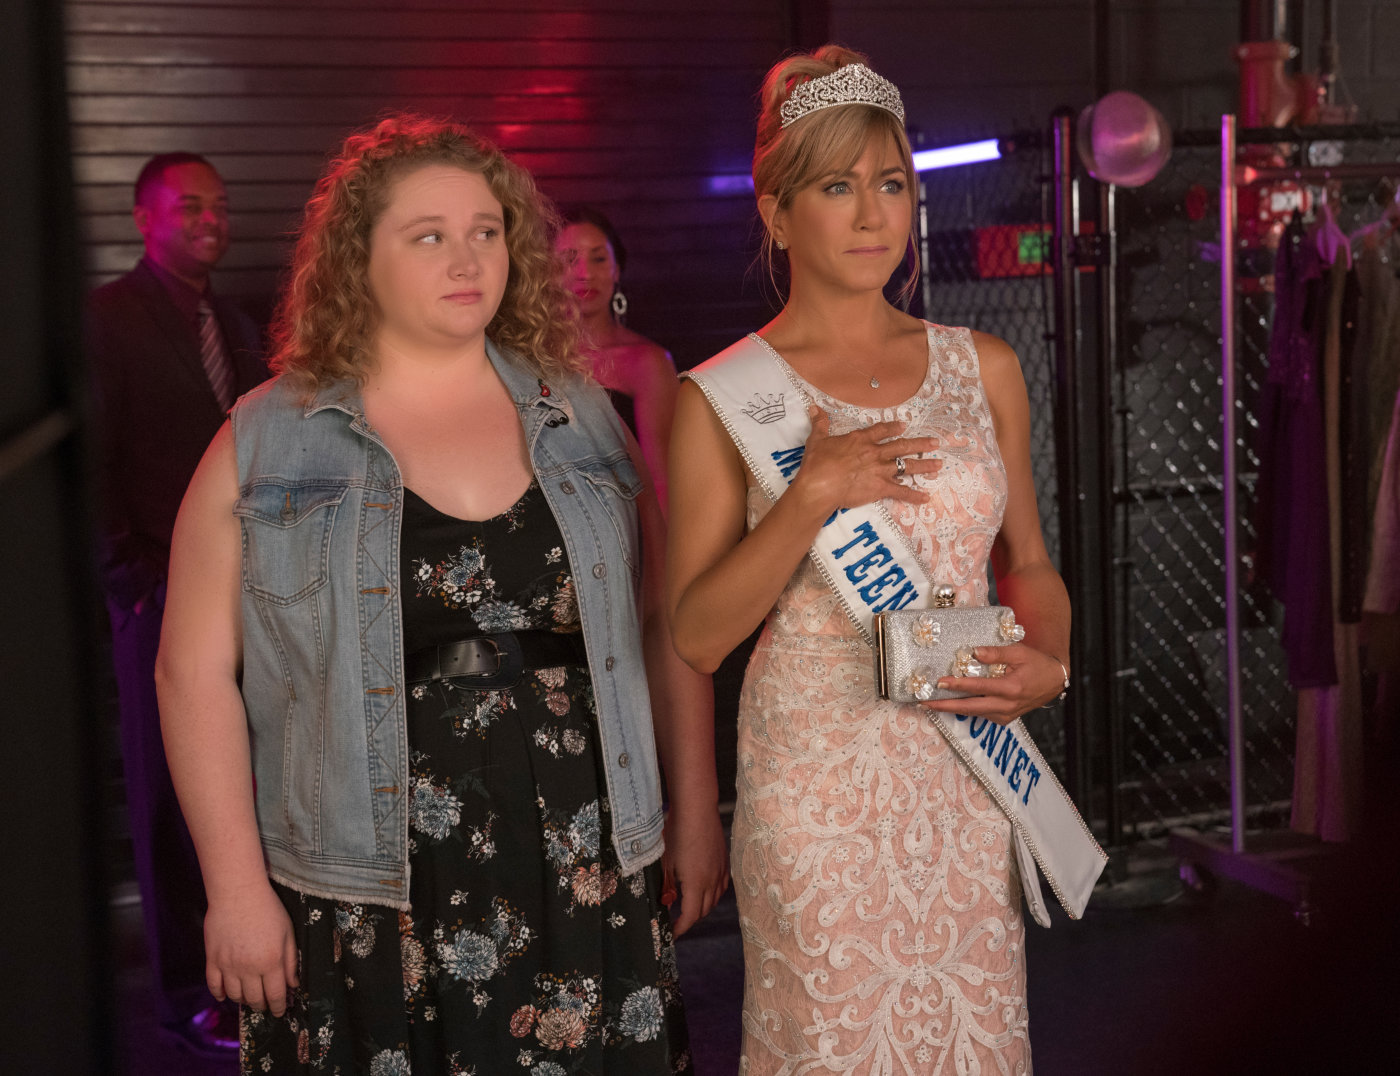 Movie Review: Dumplin'